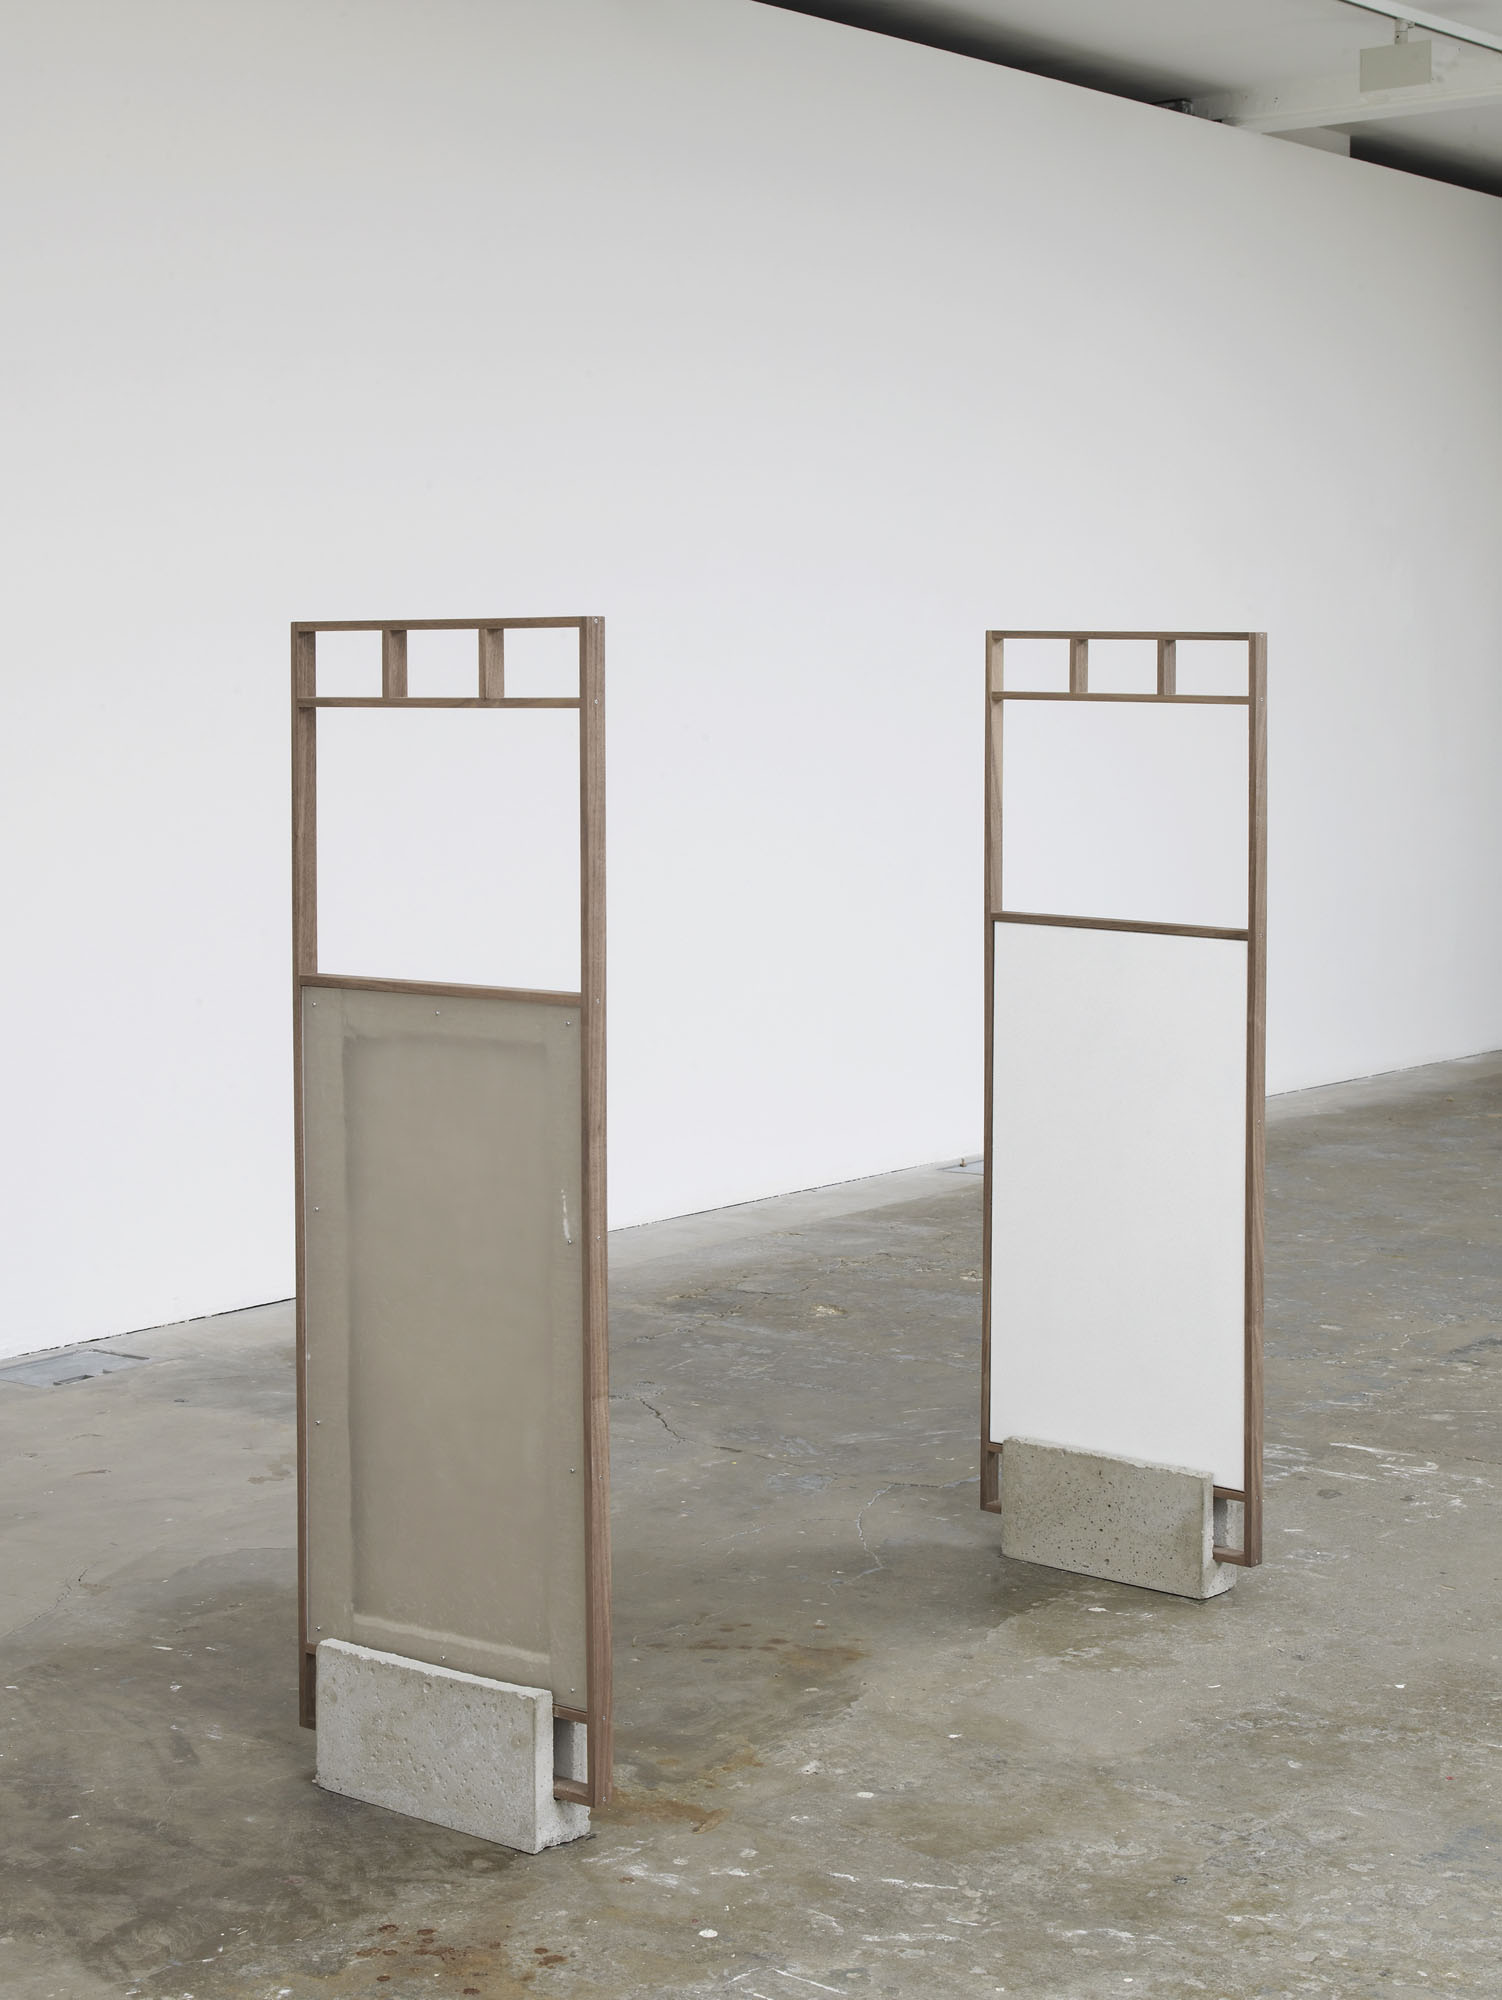 Significant Other, 2016 Walnut frame, cement plinth, engraved metal label, lacquer on canvas, acrylic glass 140 x 46 x 9 cm 55 1/8 x 18 1/8 x 3 1/2 ins. 2 , Philipp Timischl